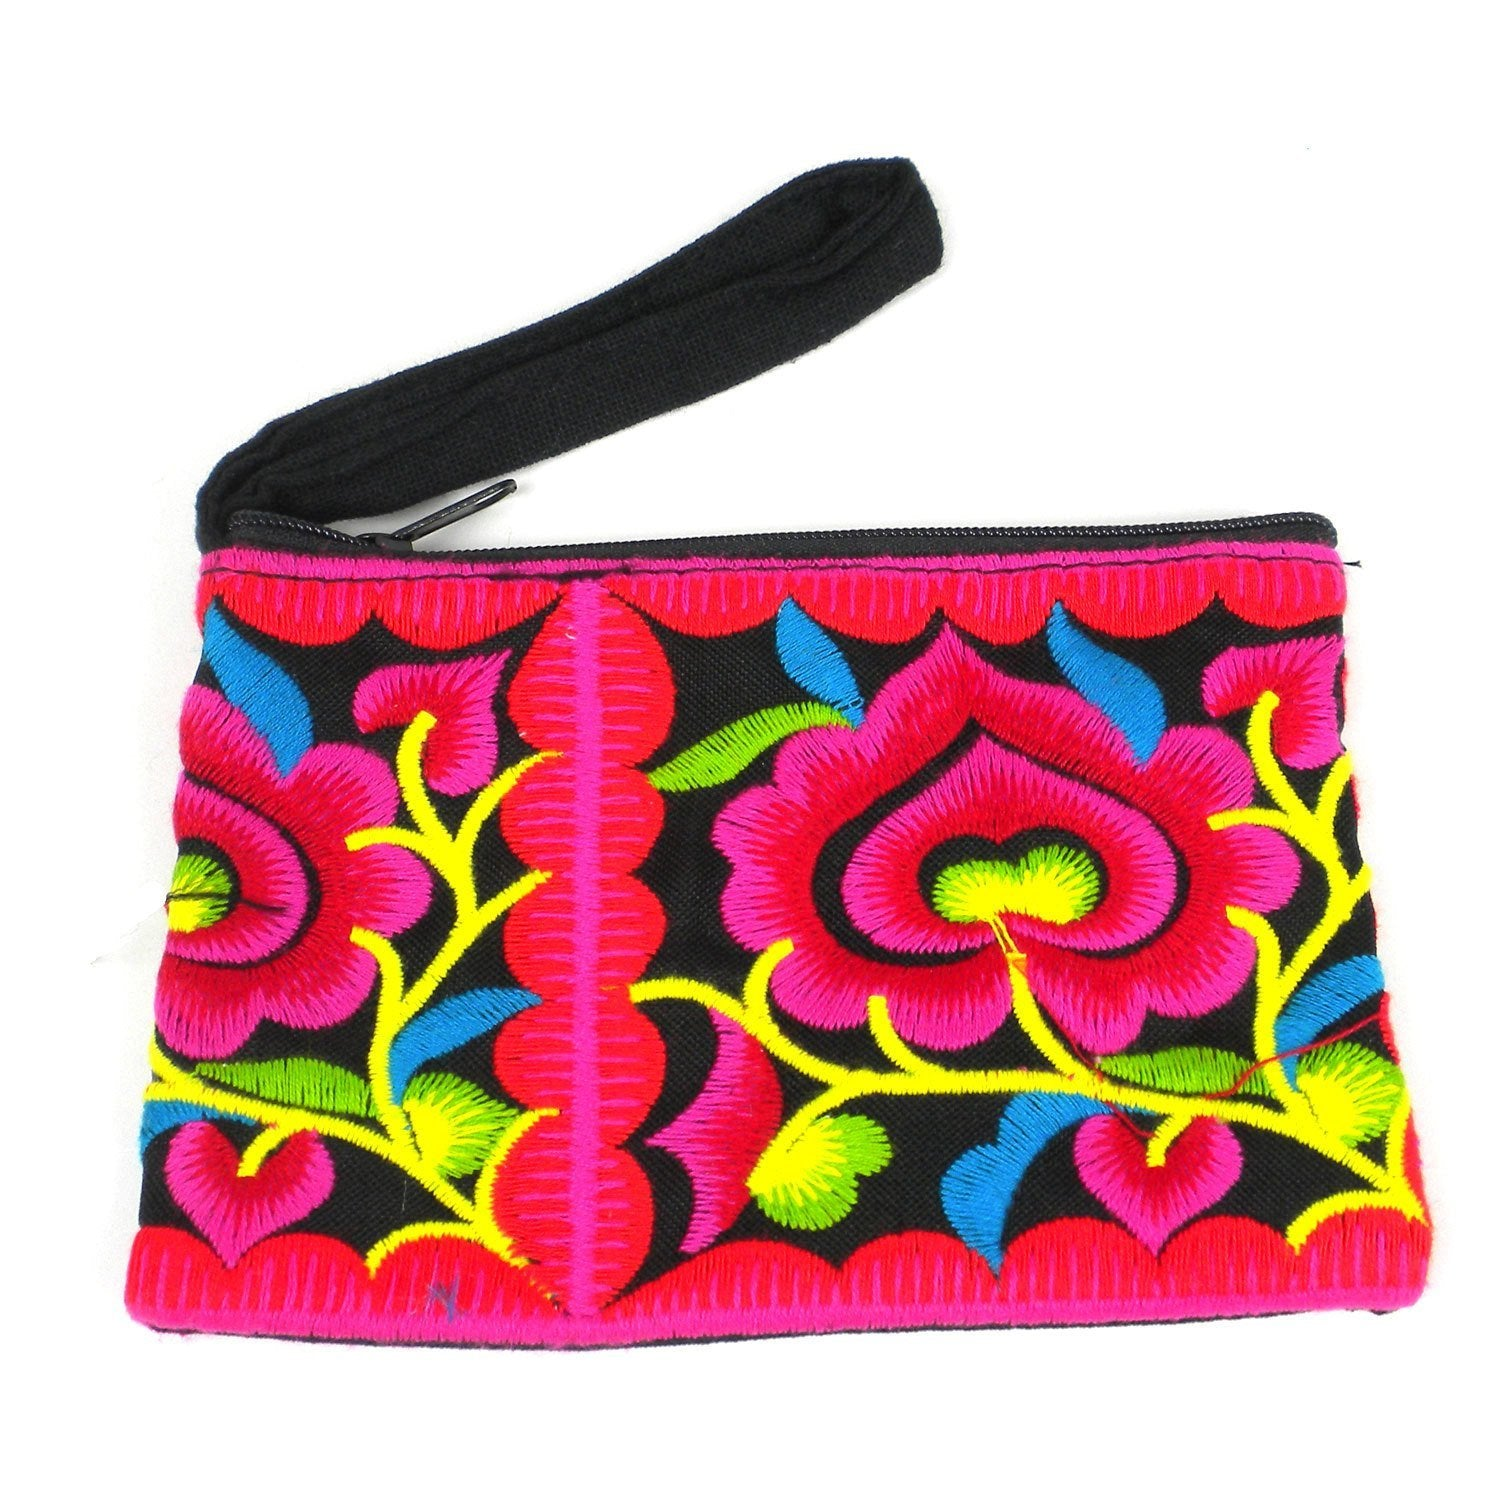 Hmong Embroidered Coin Purse - Black